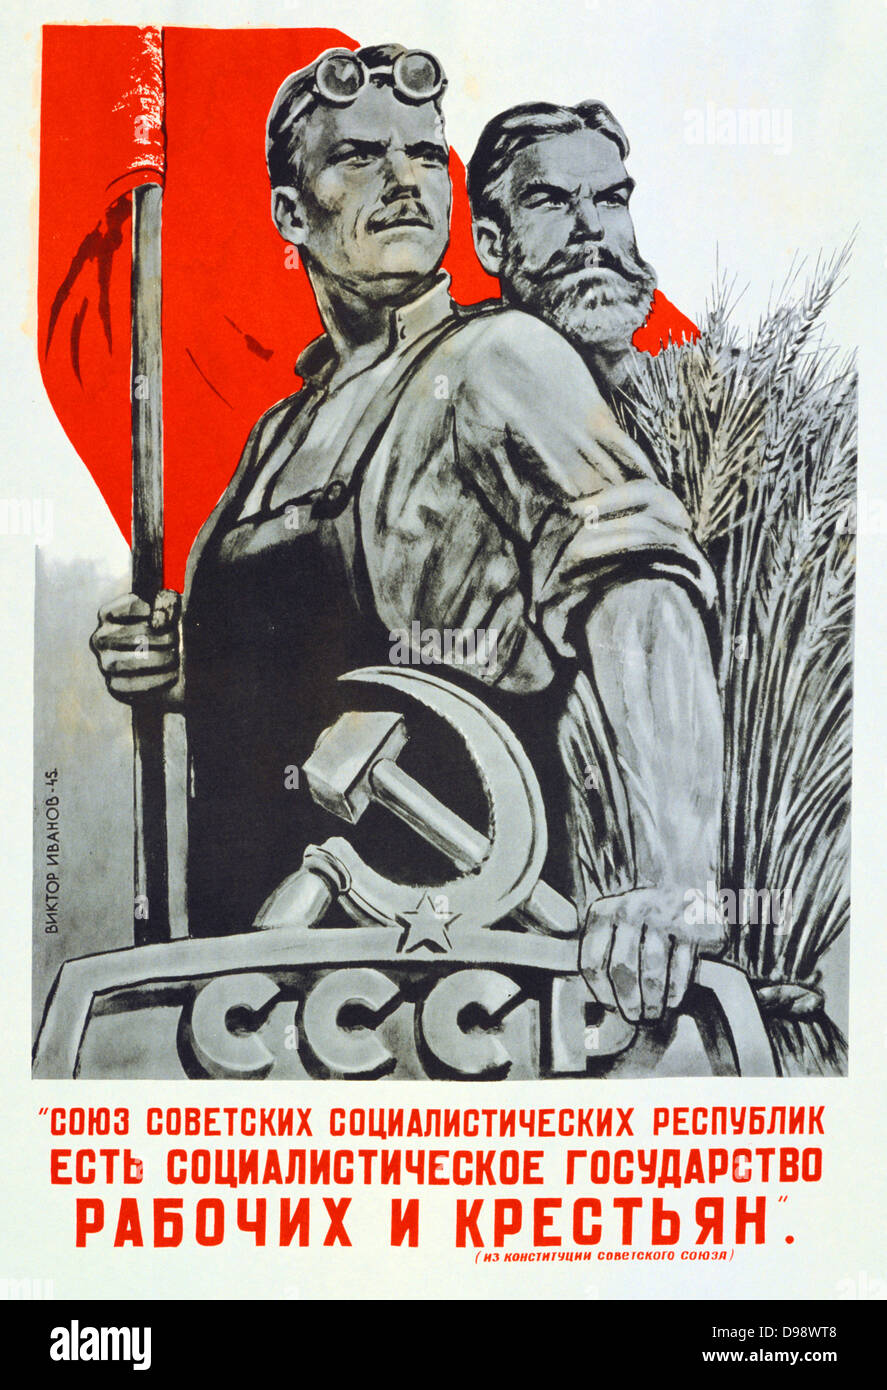 The USSR is the socialist state for factory workers and peasants', 1945. Soviet propaganda poster. Russia Communism - Stock Image